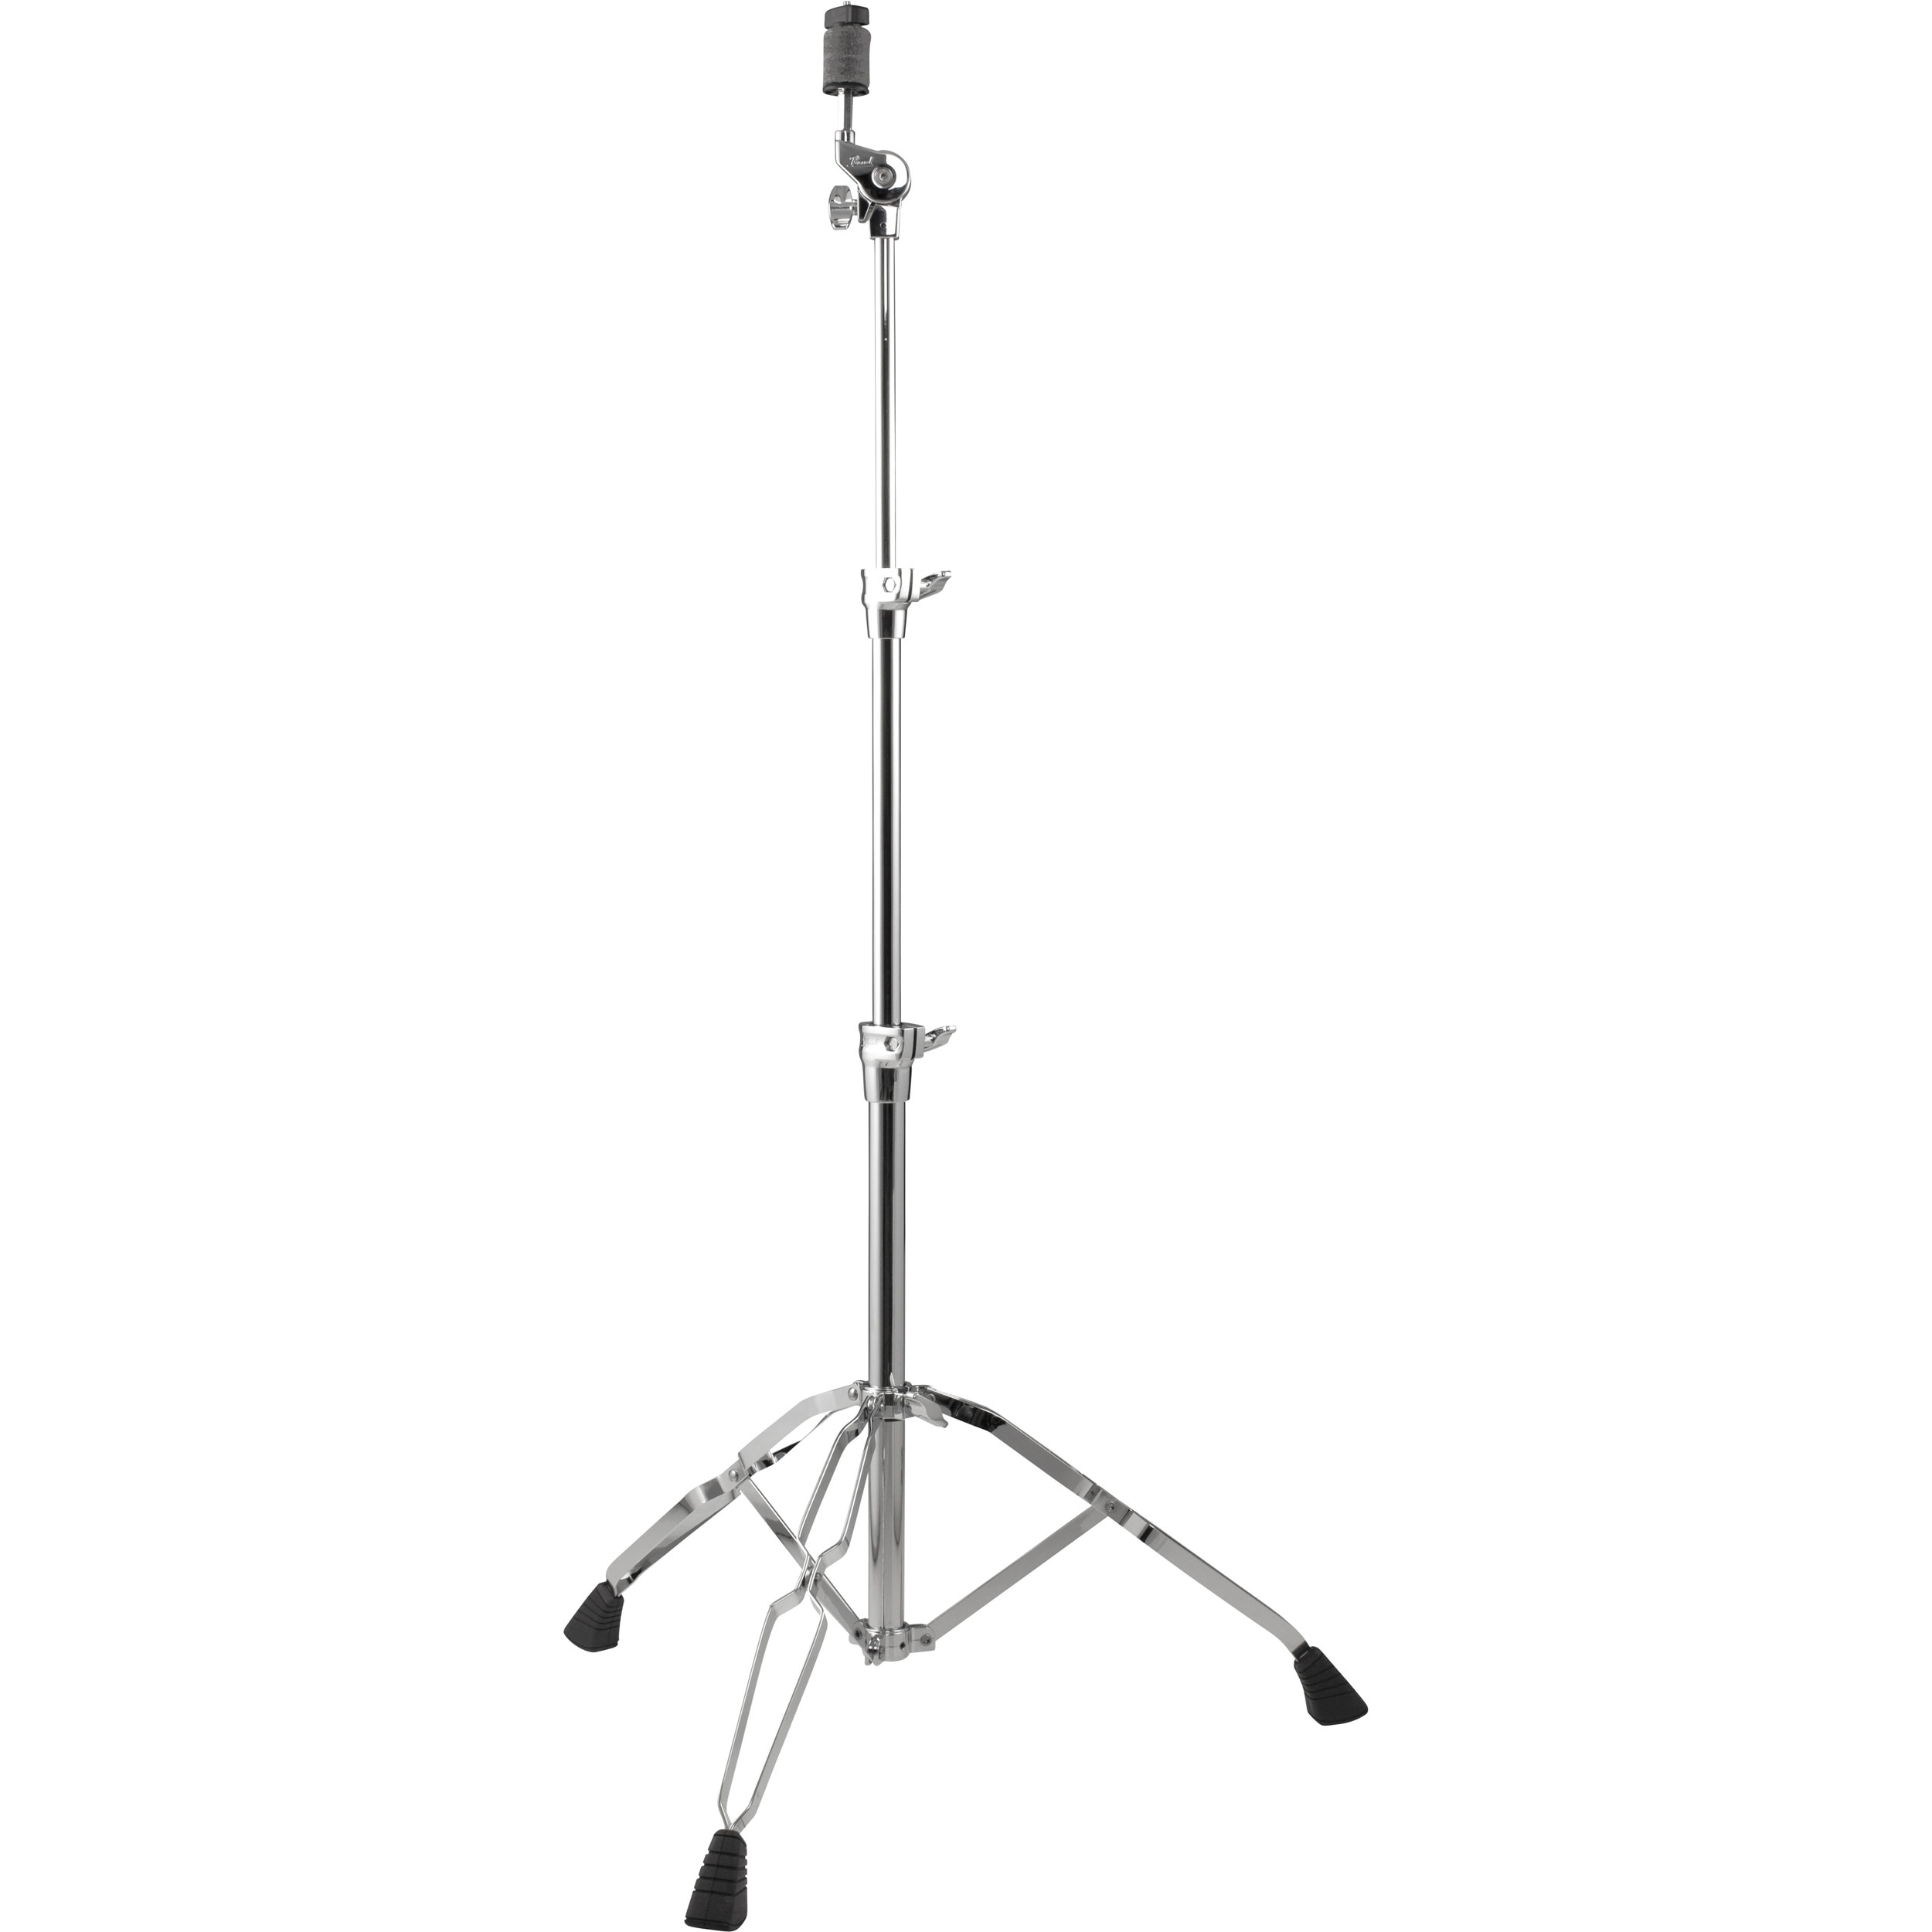 Pearl C-930 Uni-Lock Double-Braced Straight Cymbal Stand